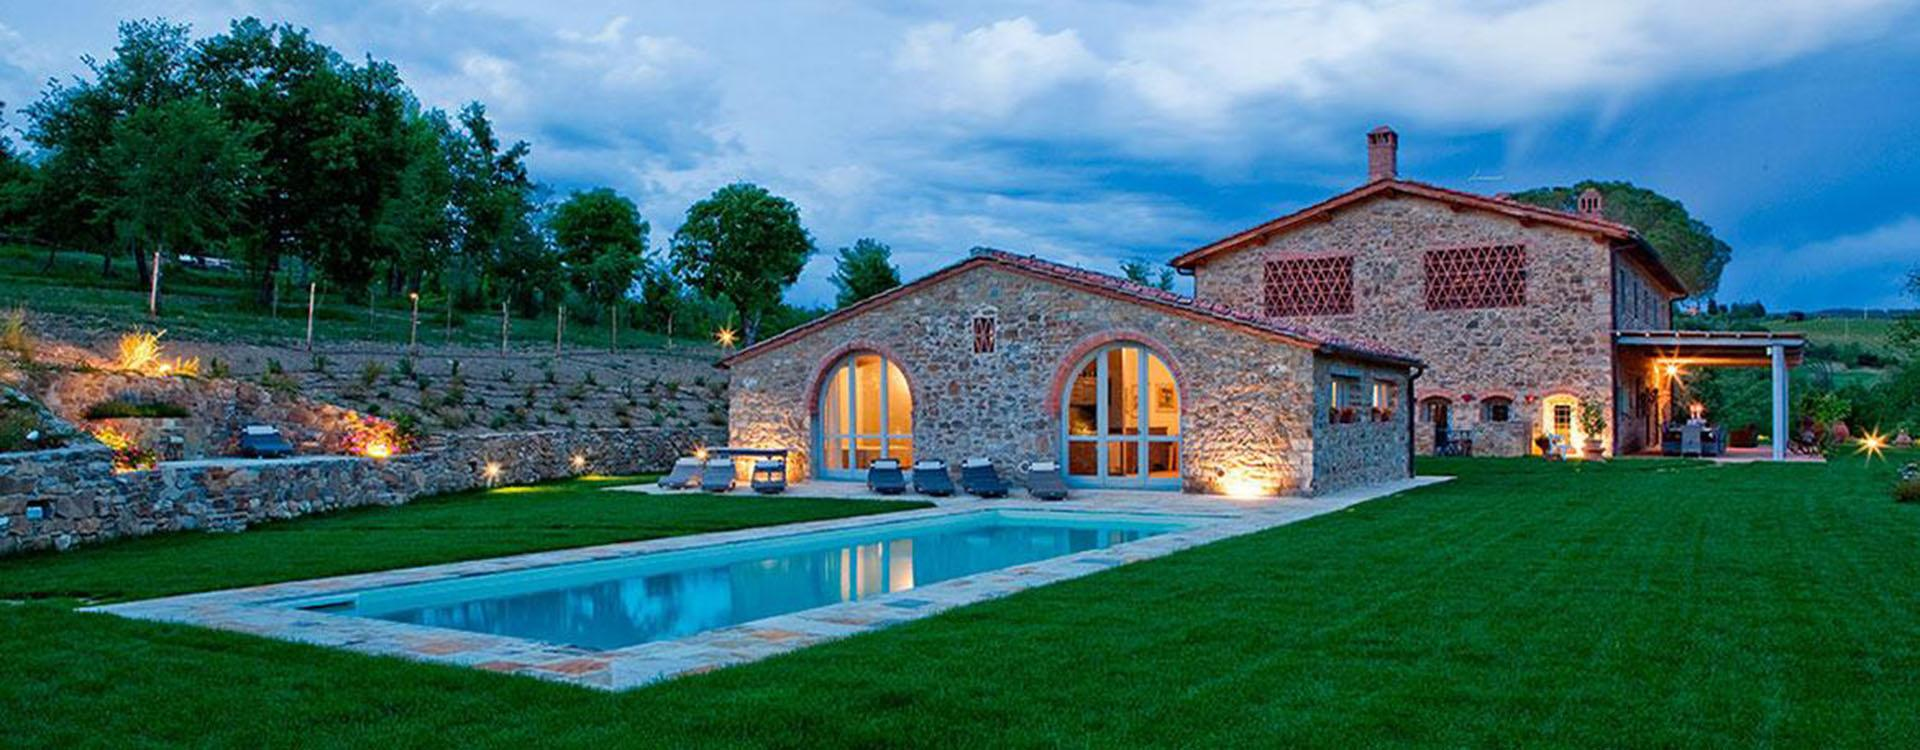 Wonderful farmhouse for sale in Chianti area with pool and garden